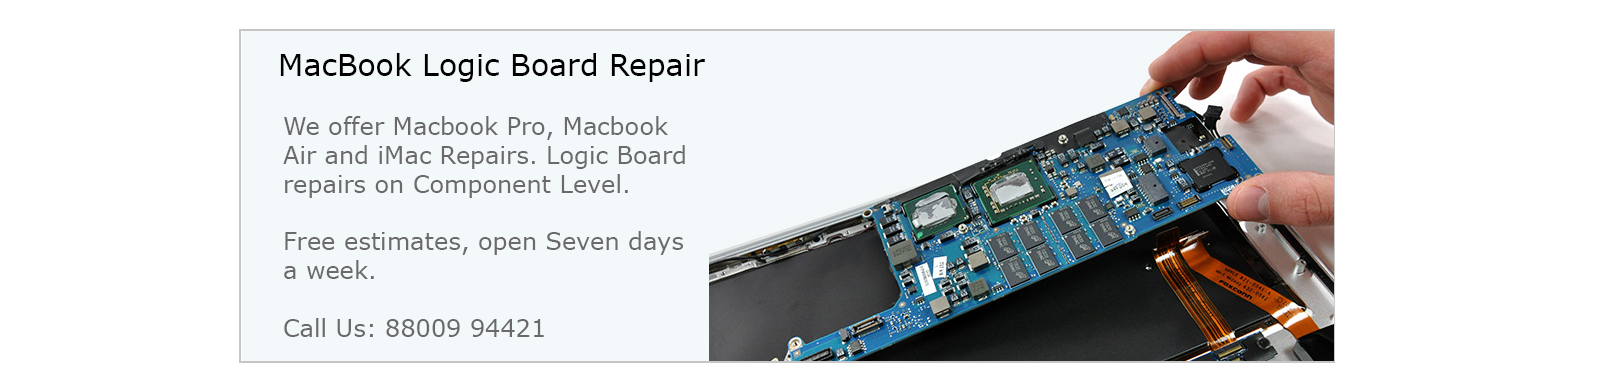 macbook pro motherboard repair, logic board repair